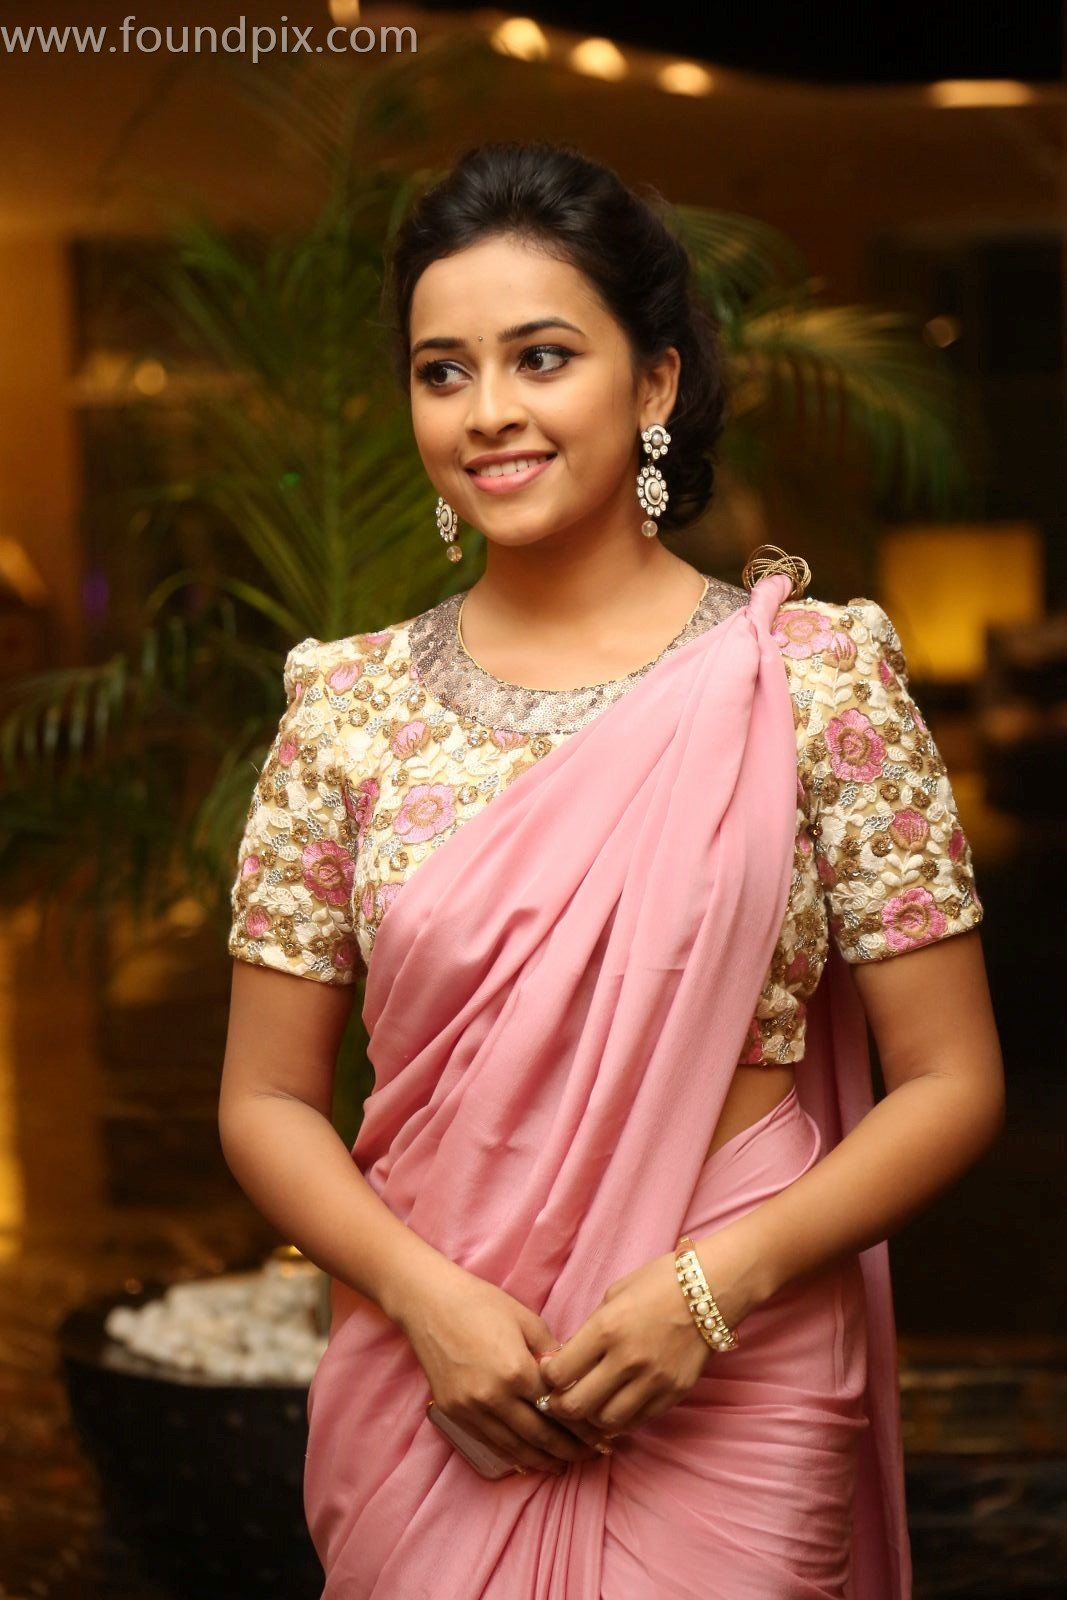 Actress Sri Divya Photos: Actress Sri Divya Latest Stills,Actress Sri Divya Hot